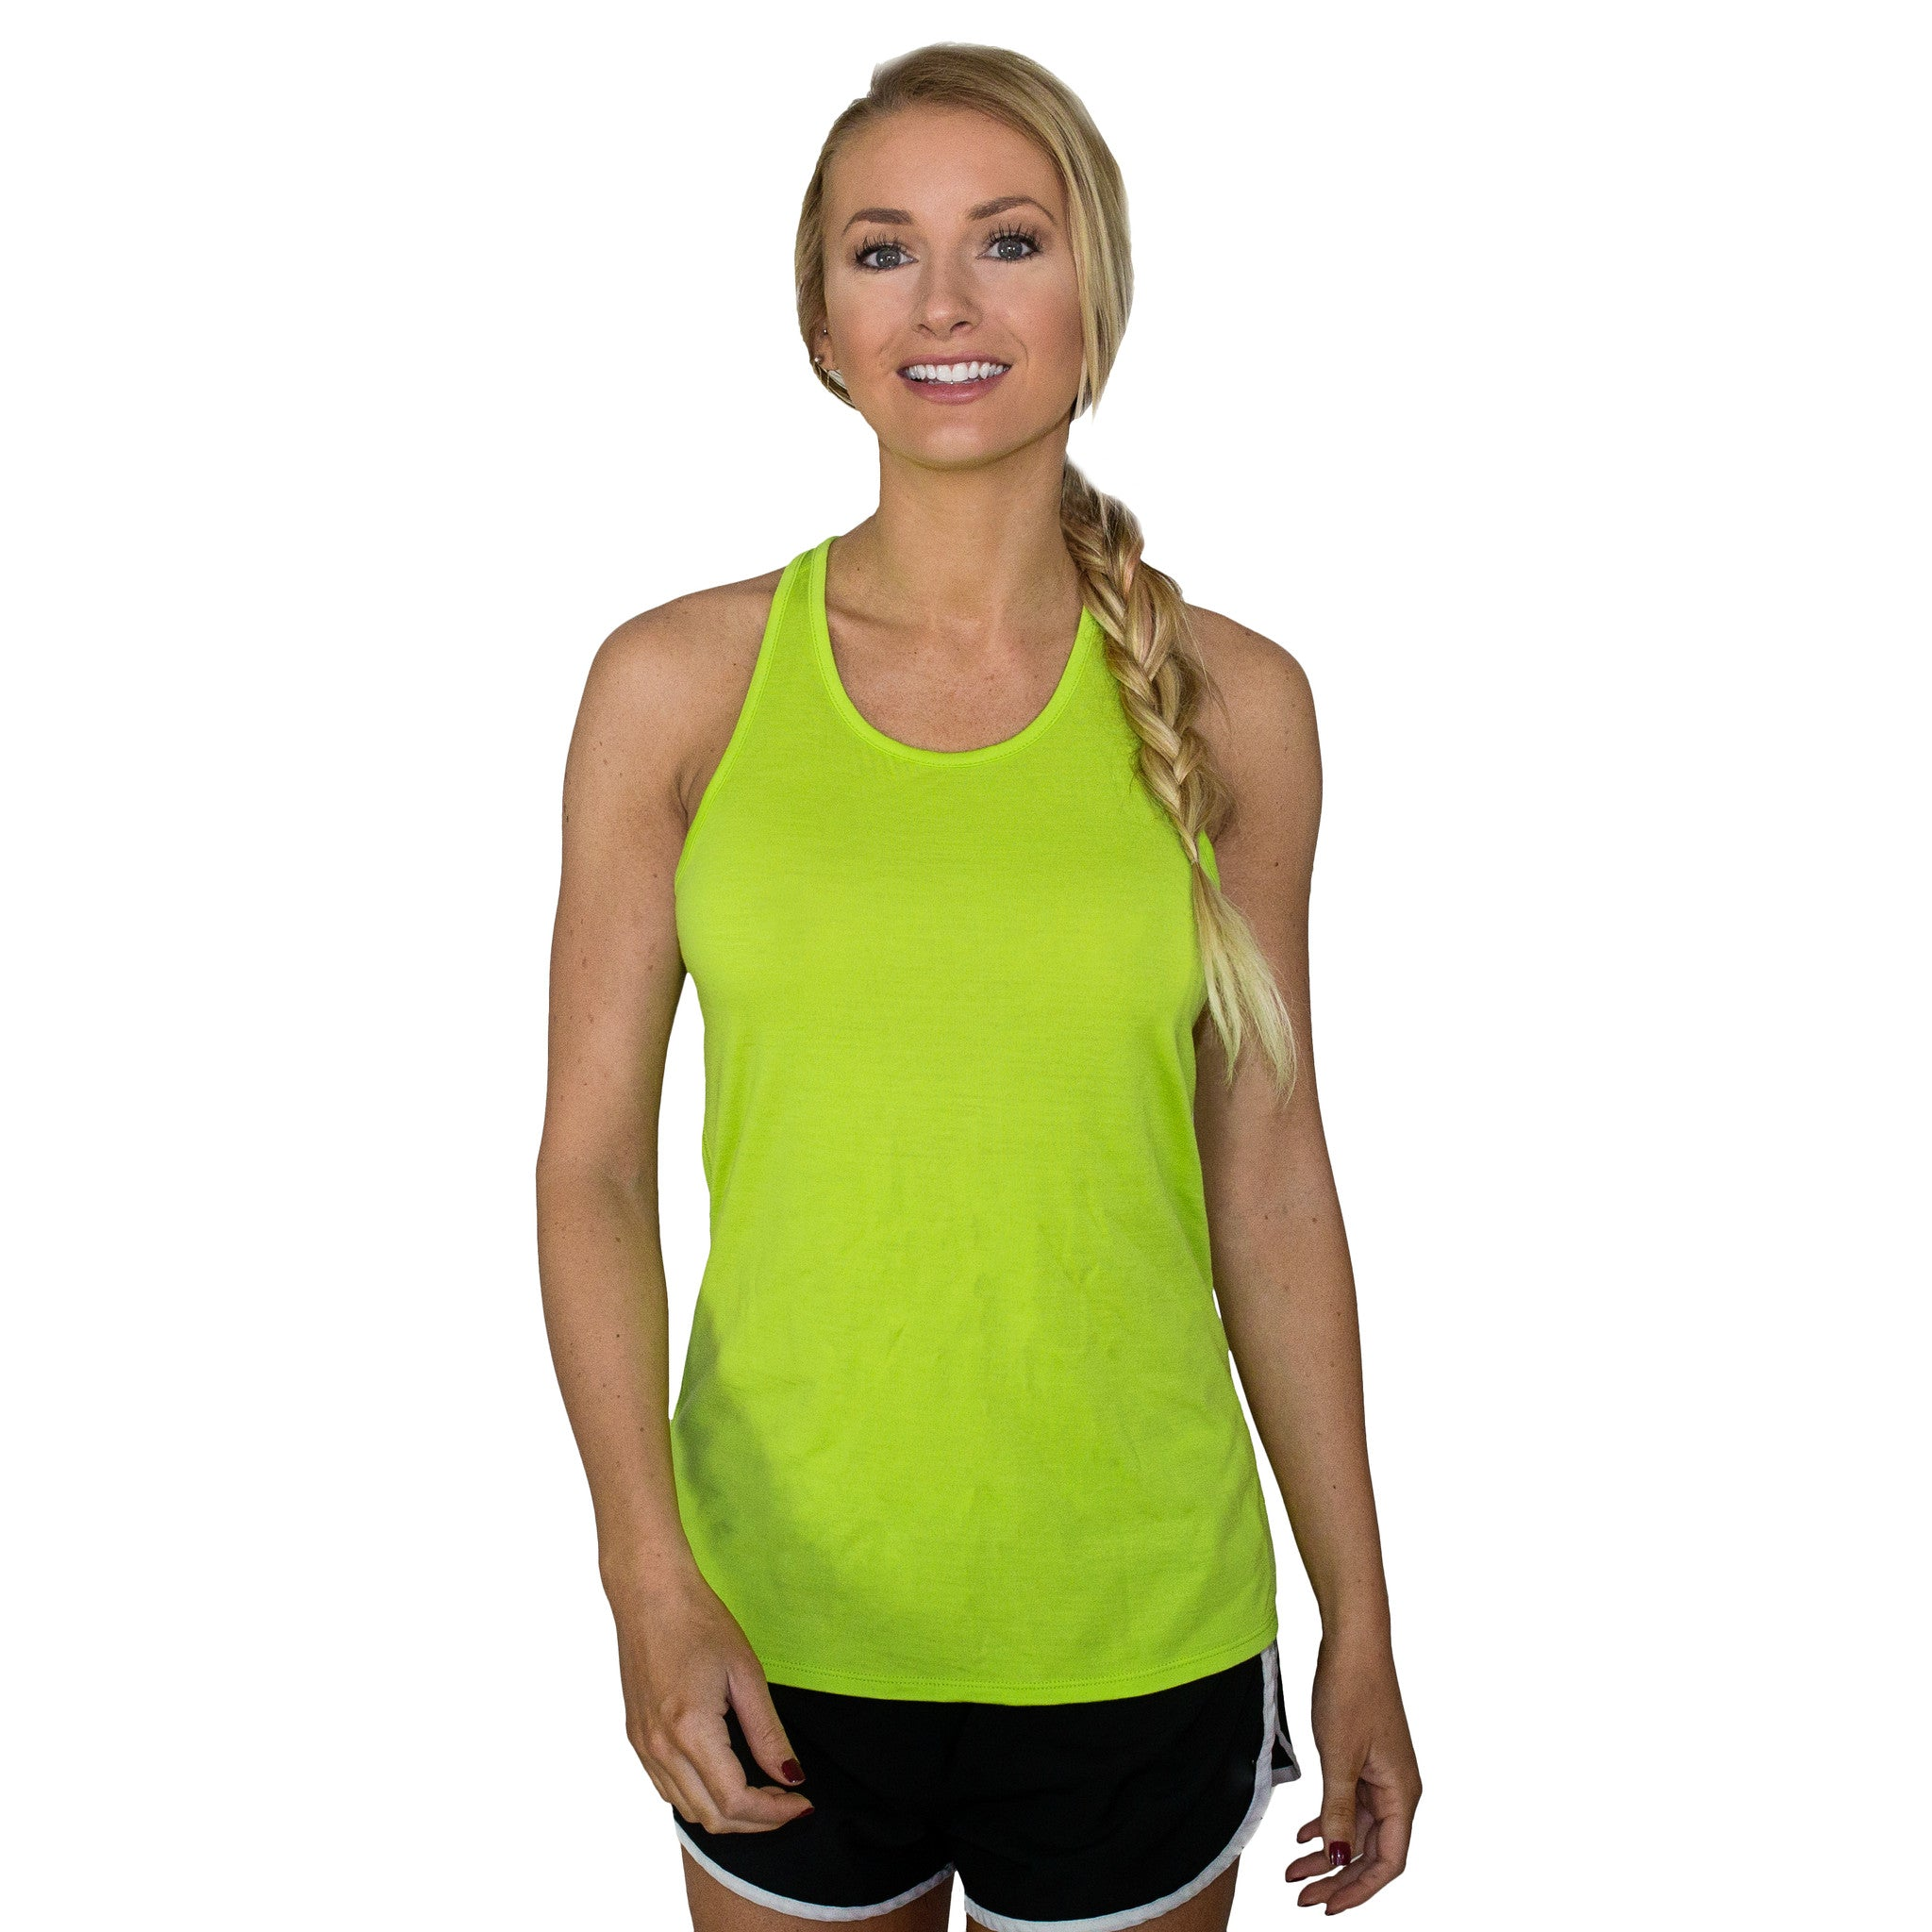 db844e6b5ce5f Womens Merino Wool Athletic Tank Top - The Bella - Free Shipping